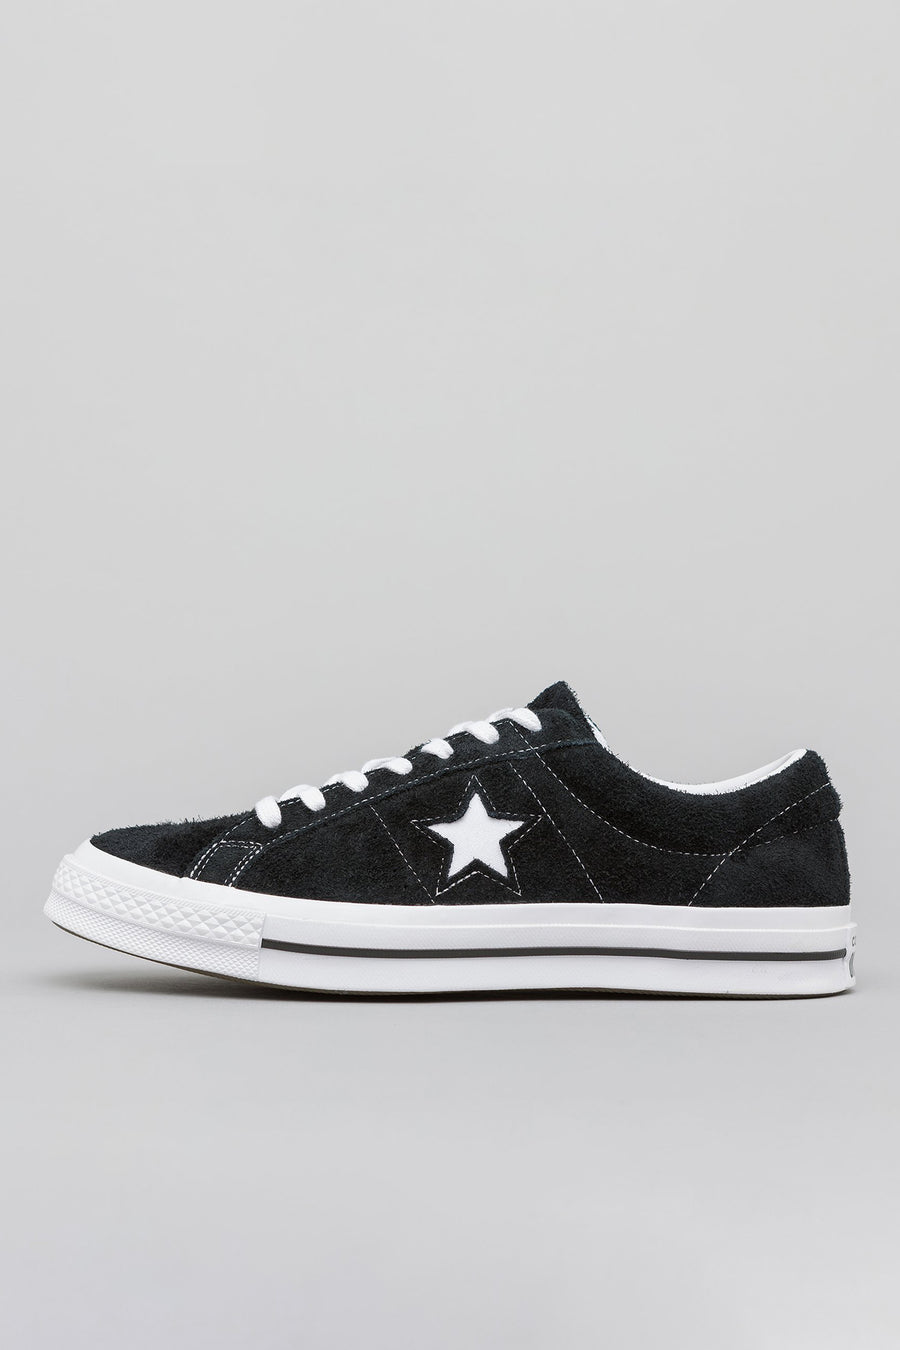 CONVERSE ONE STAR OX PREMIUM SUEDE 158369C Sneakers76